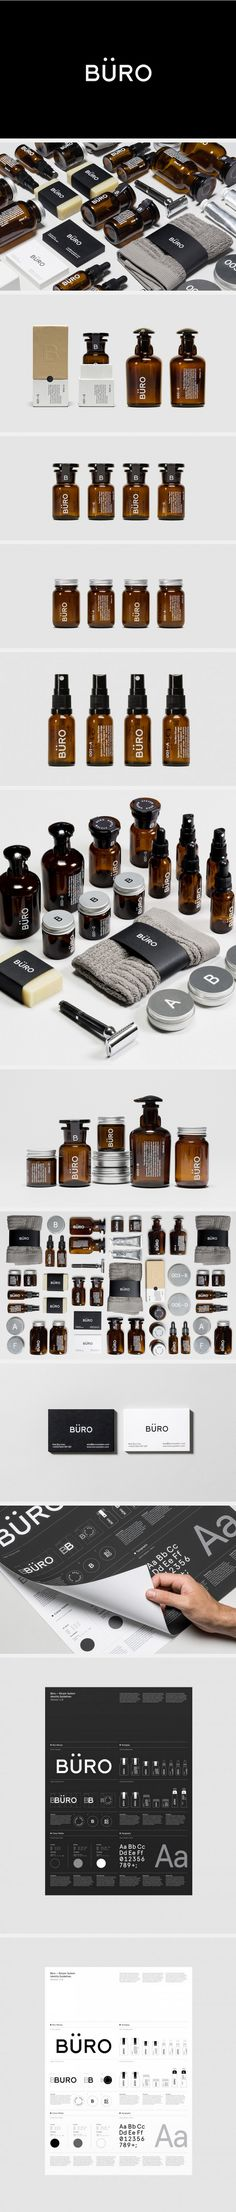 Büro System #identity #packaging #branding PD